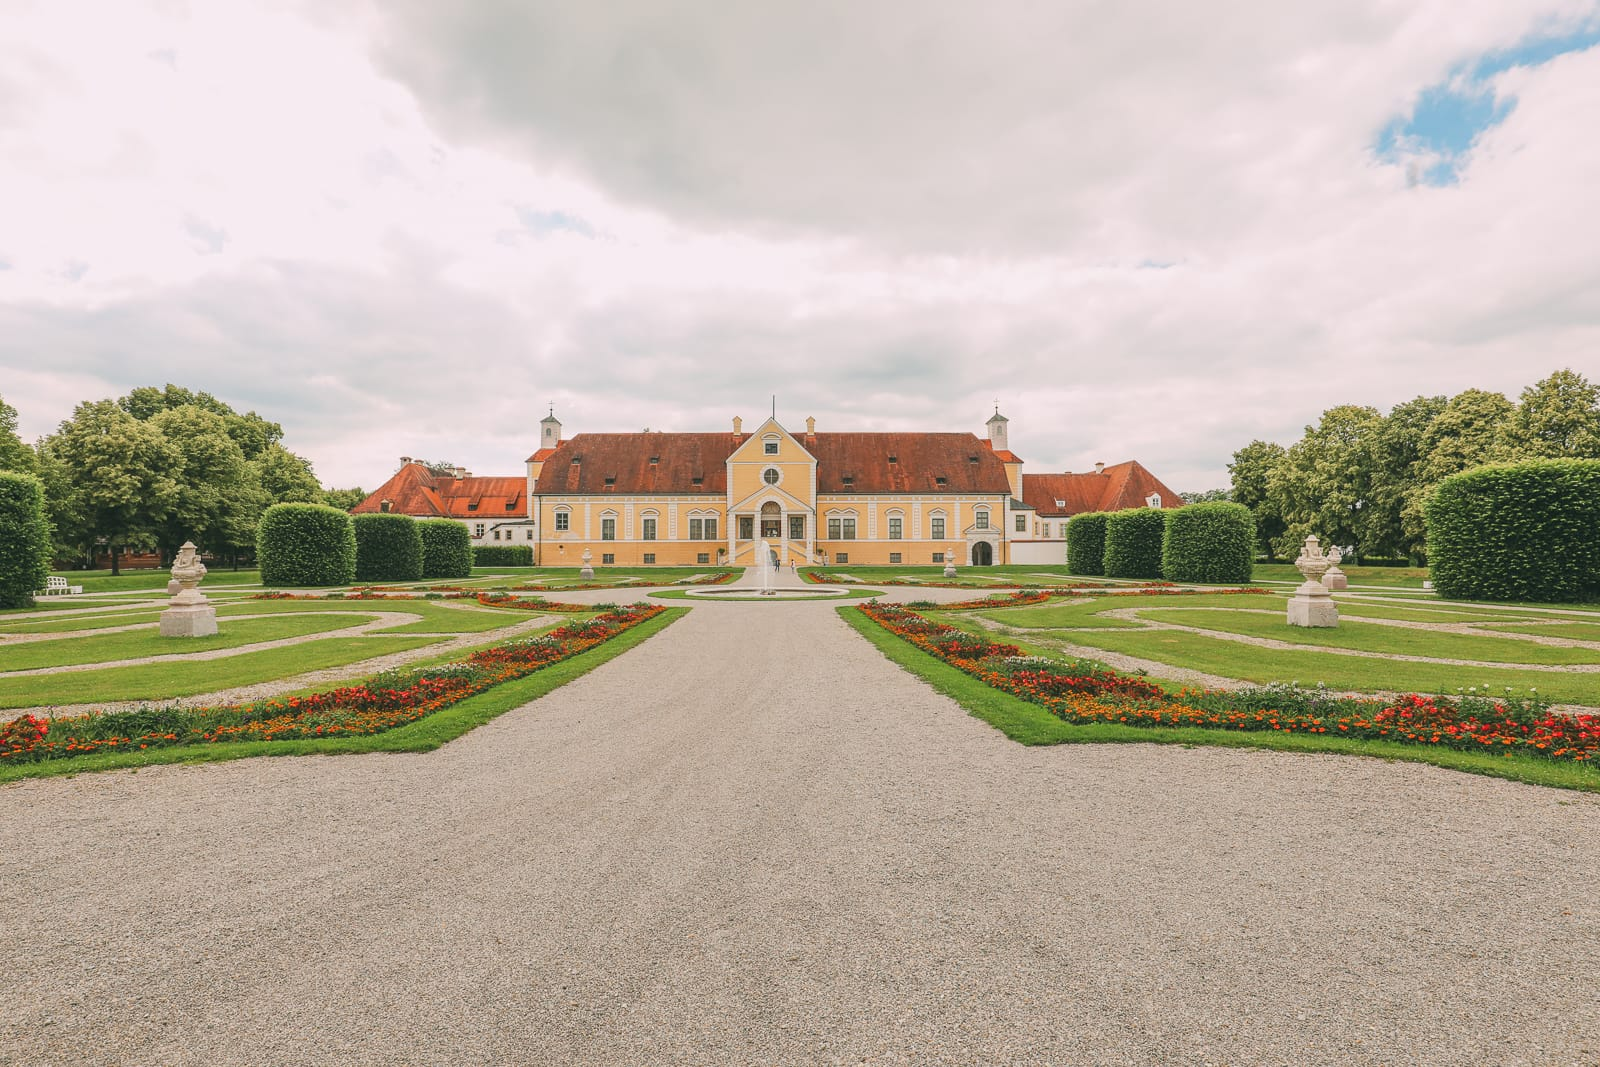 Schleissheim  Palace – The Amazing Palace in Germany You've Never Heard Of But Absolutely Have To Visit! (1)